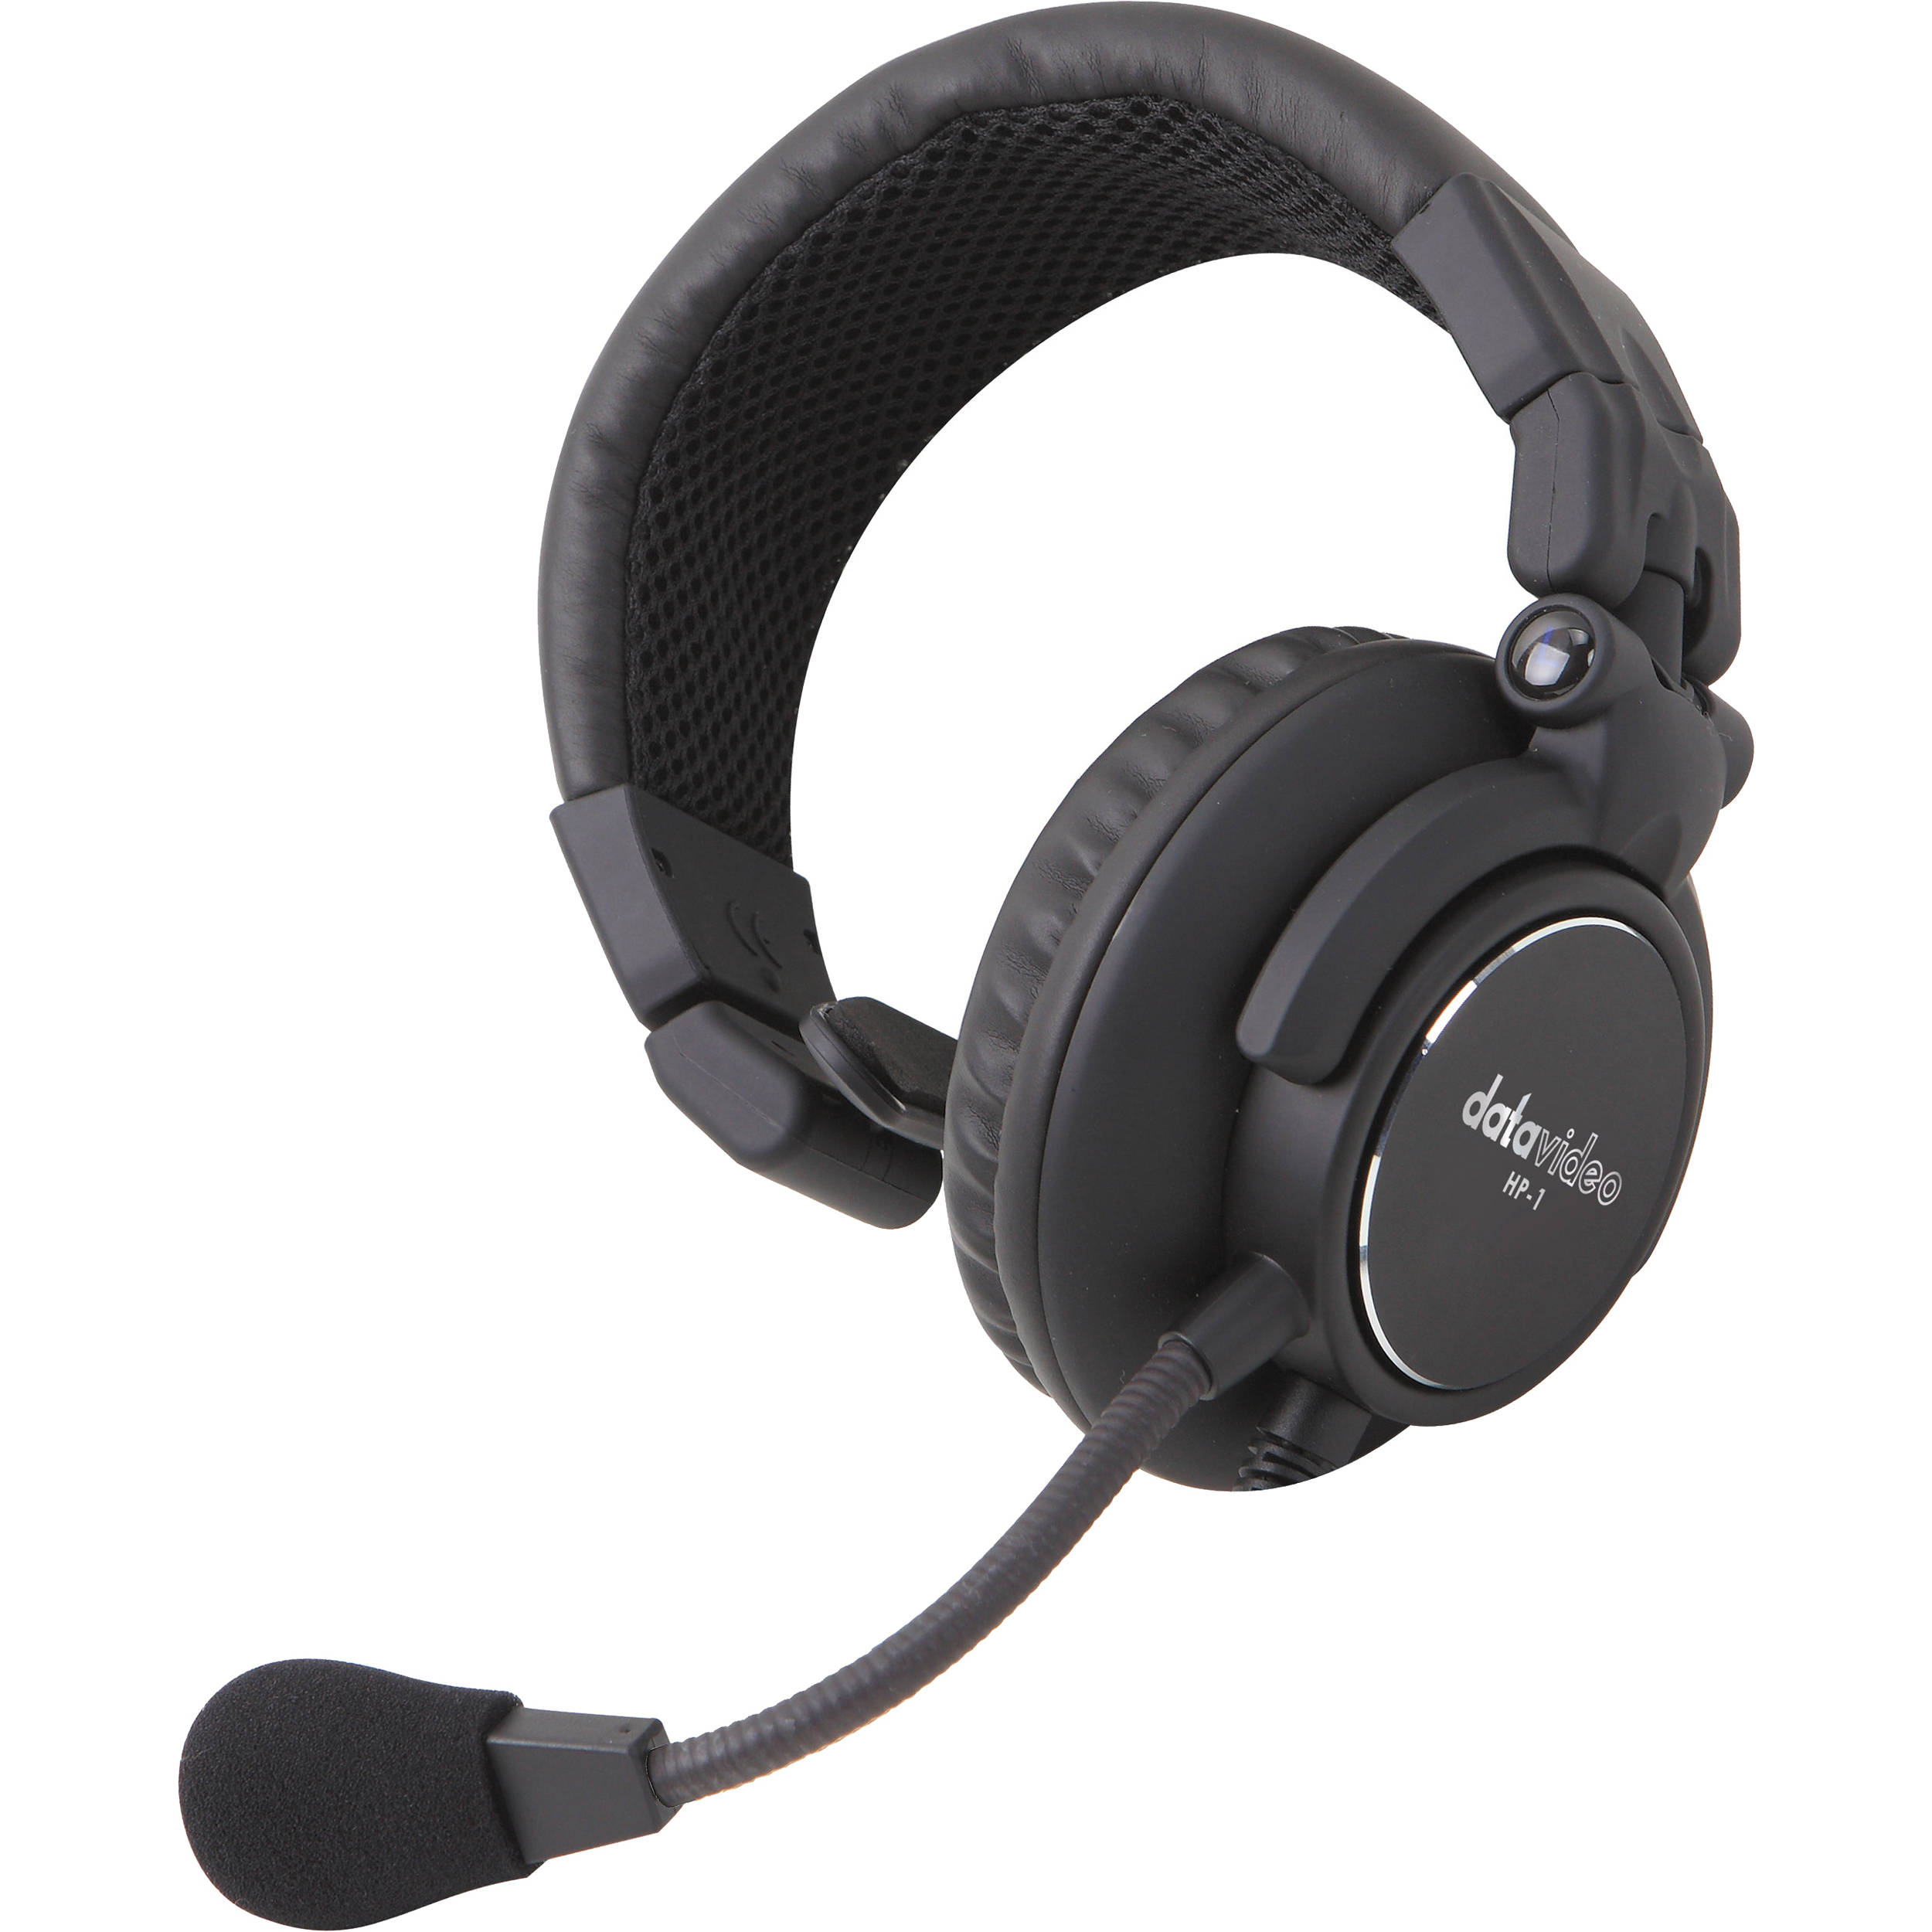 Intercom Headsets | B&H Photo Video